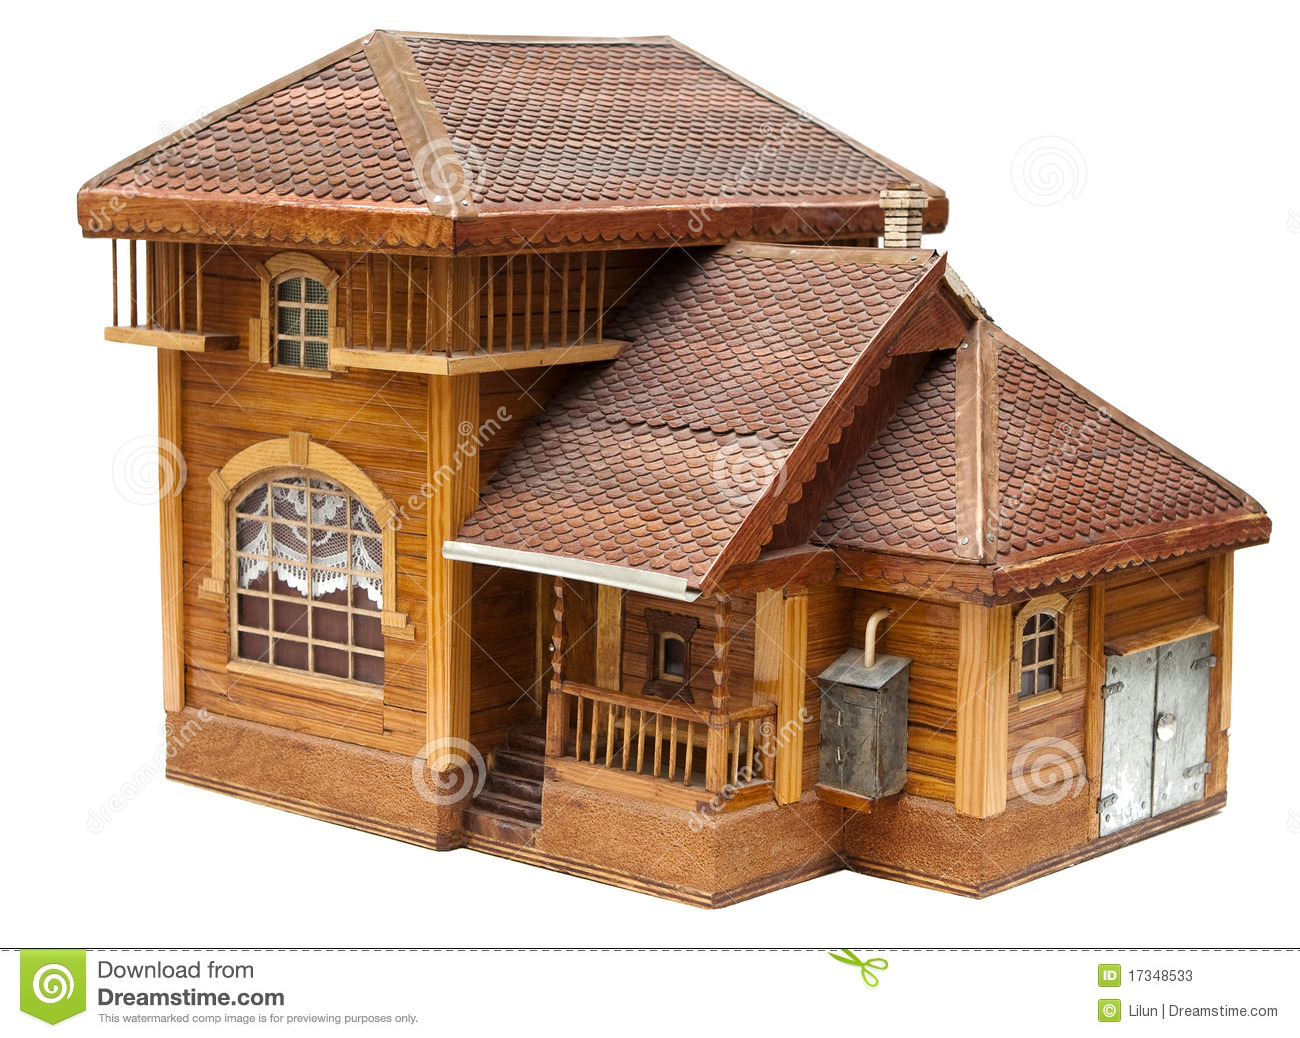 Modelo da casa feita da madeira fotos de stock imagem for How to make different types of house models